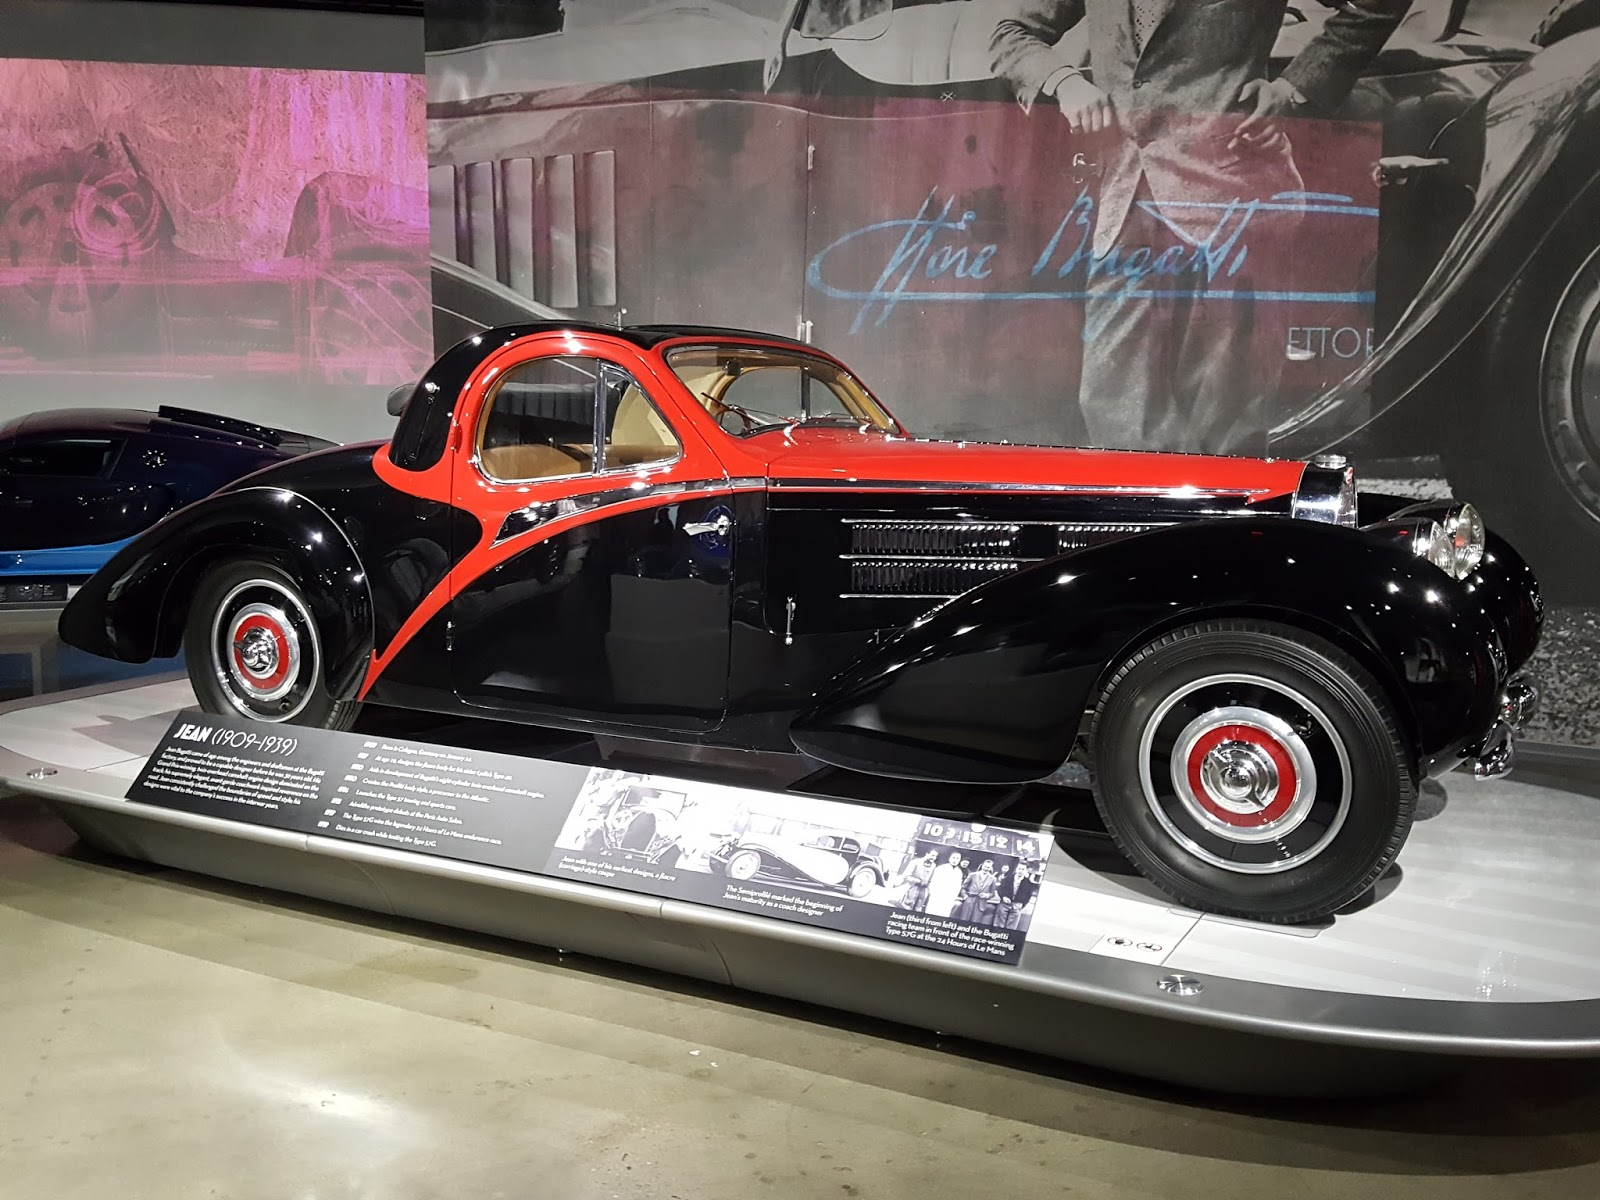 Vintage and Classic Car Blog: January 2017